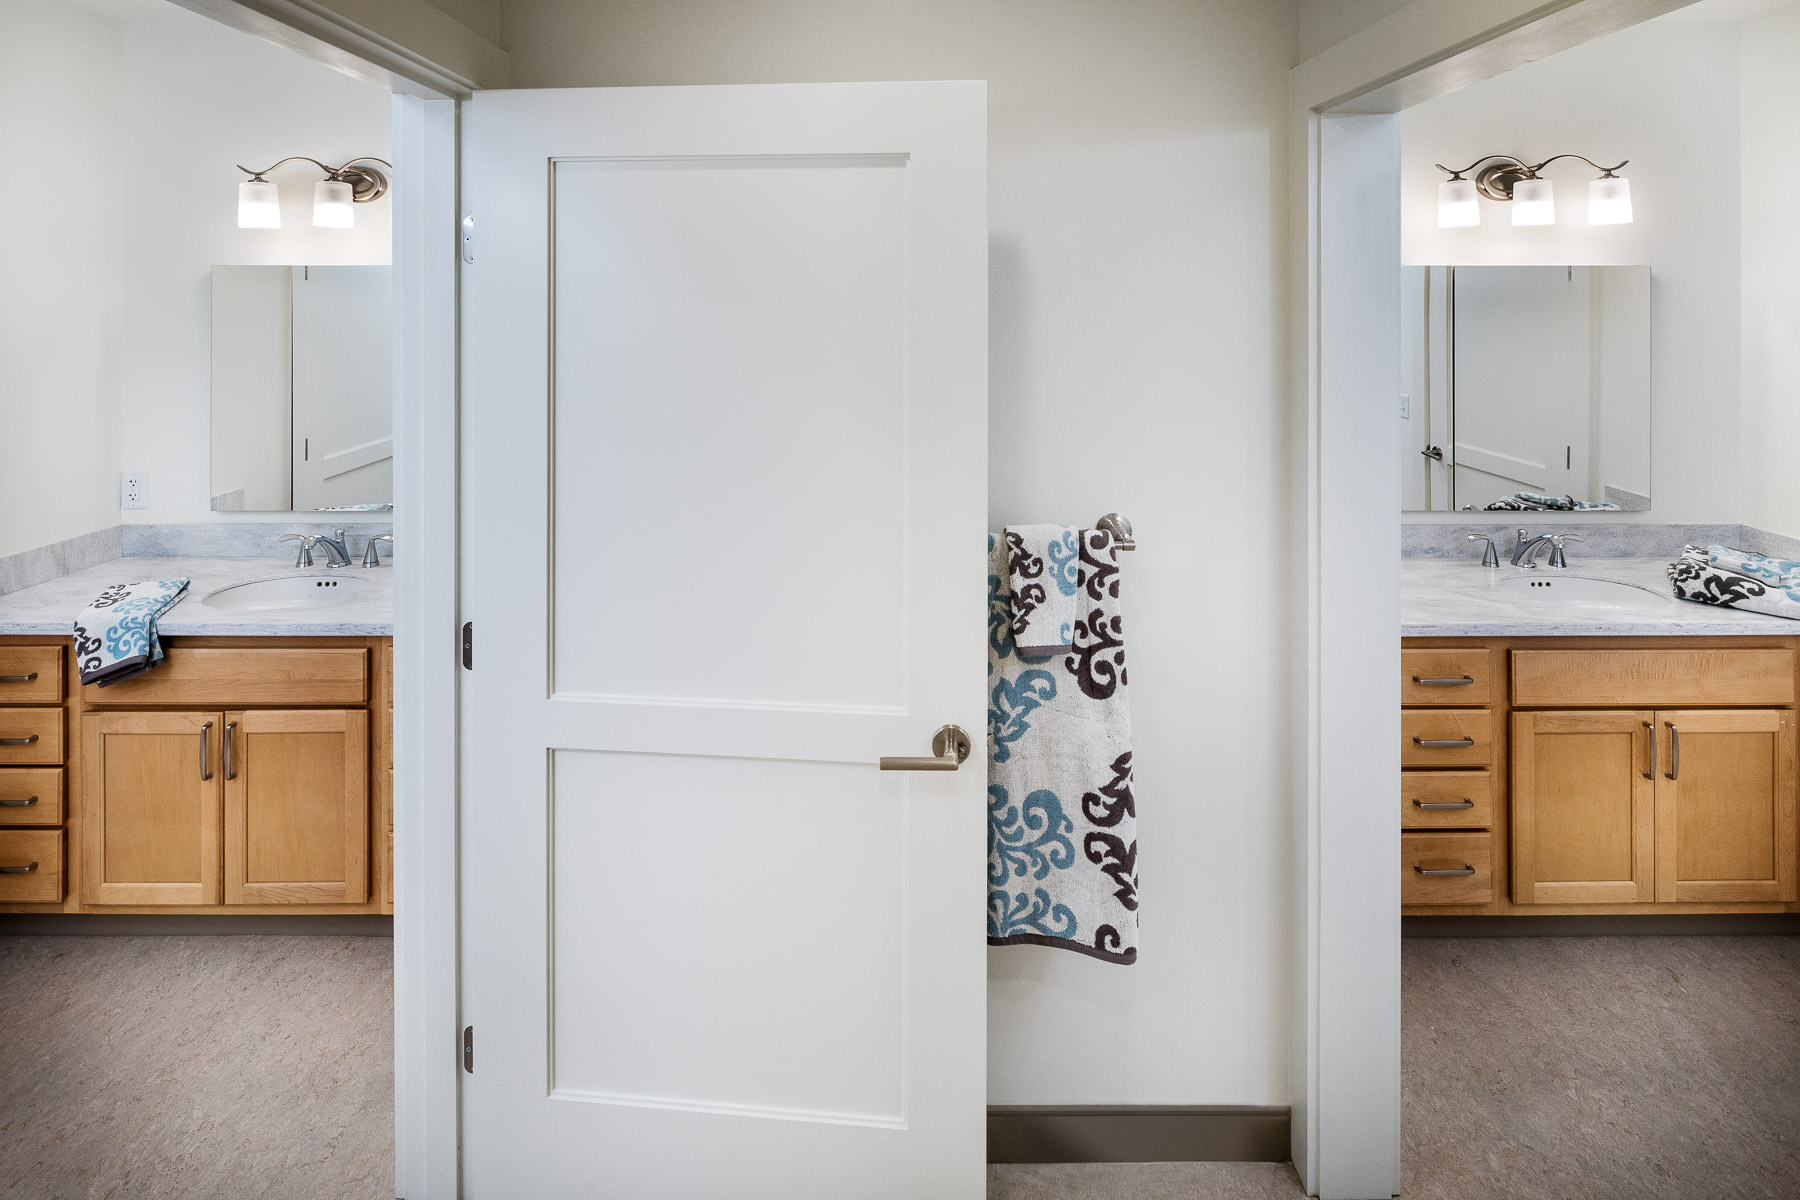 Architectural photo of a double bathroom in a double unit of the Strode Independent Living Facility in Randolph by Vermont commercial photographer Stina Booth